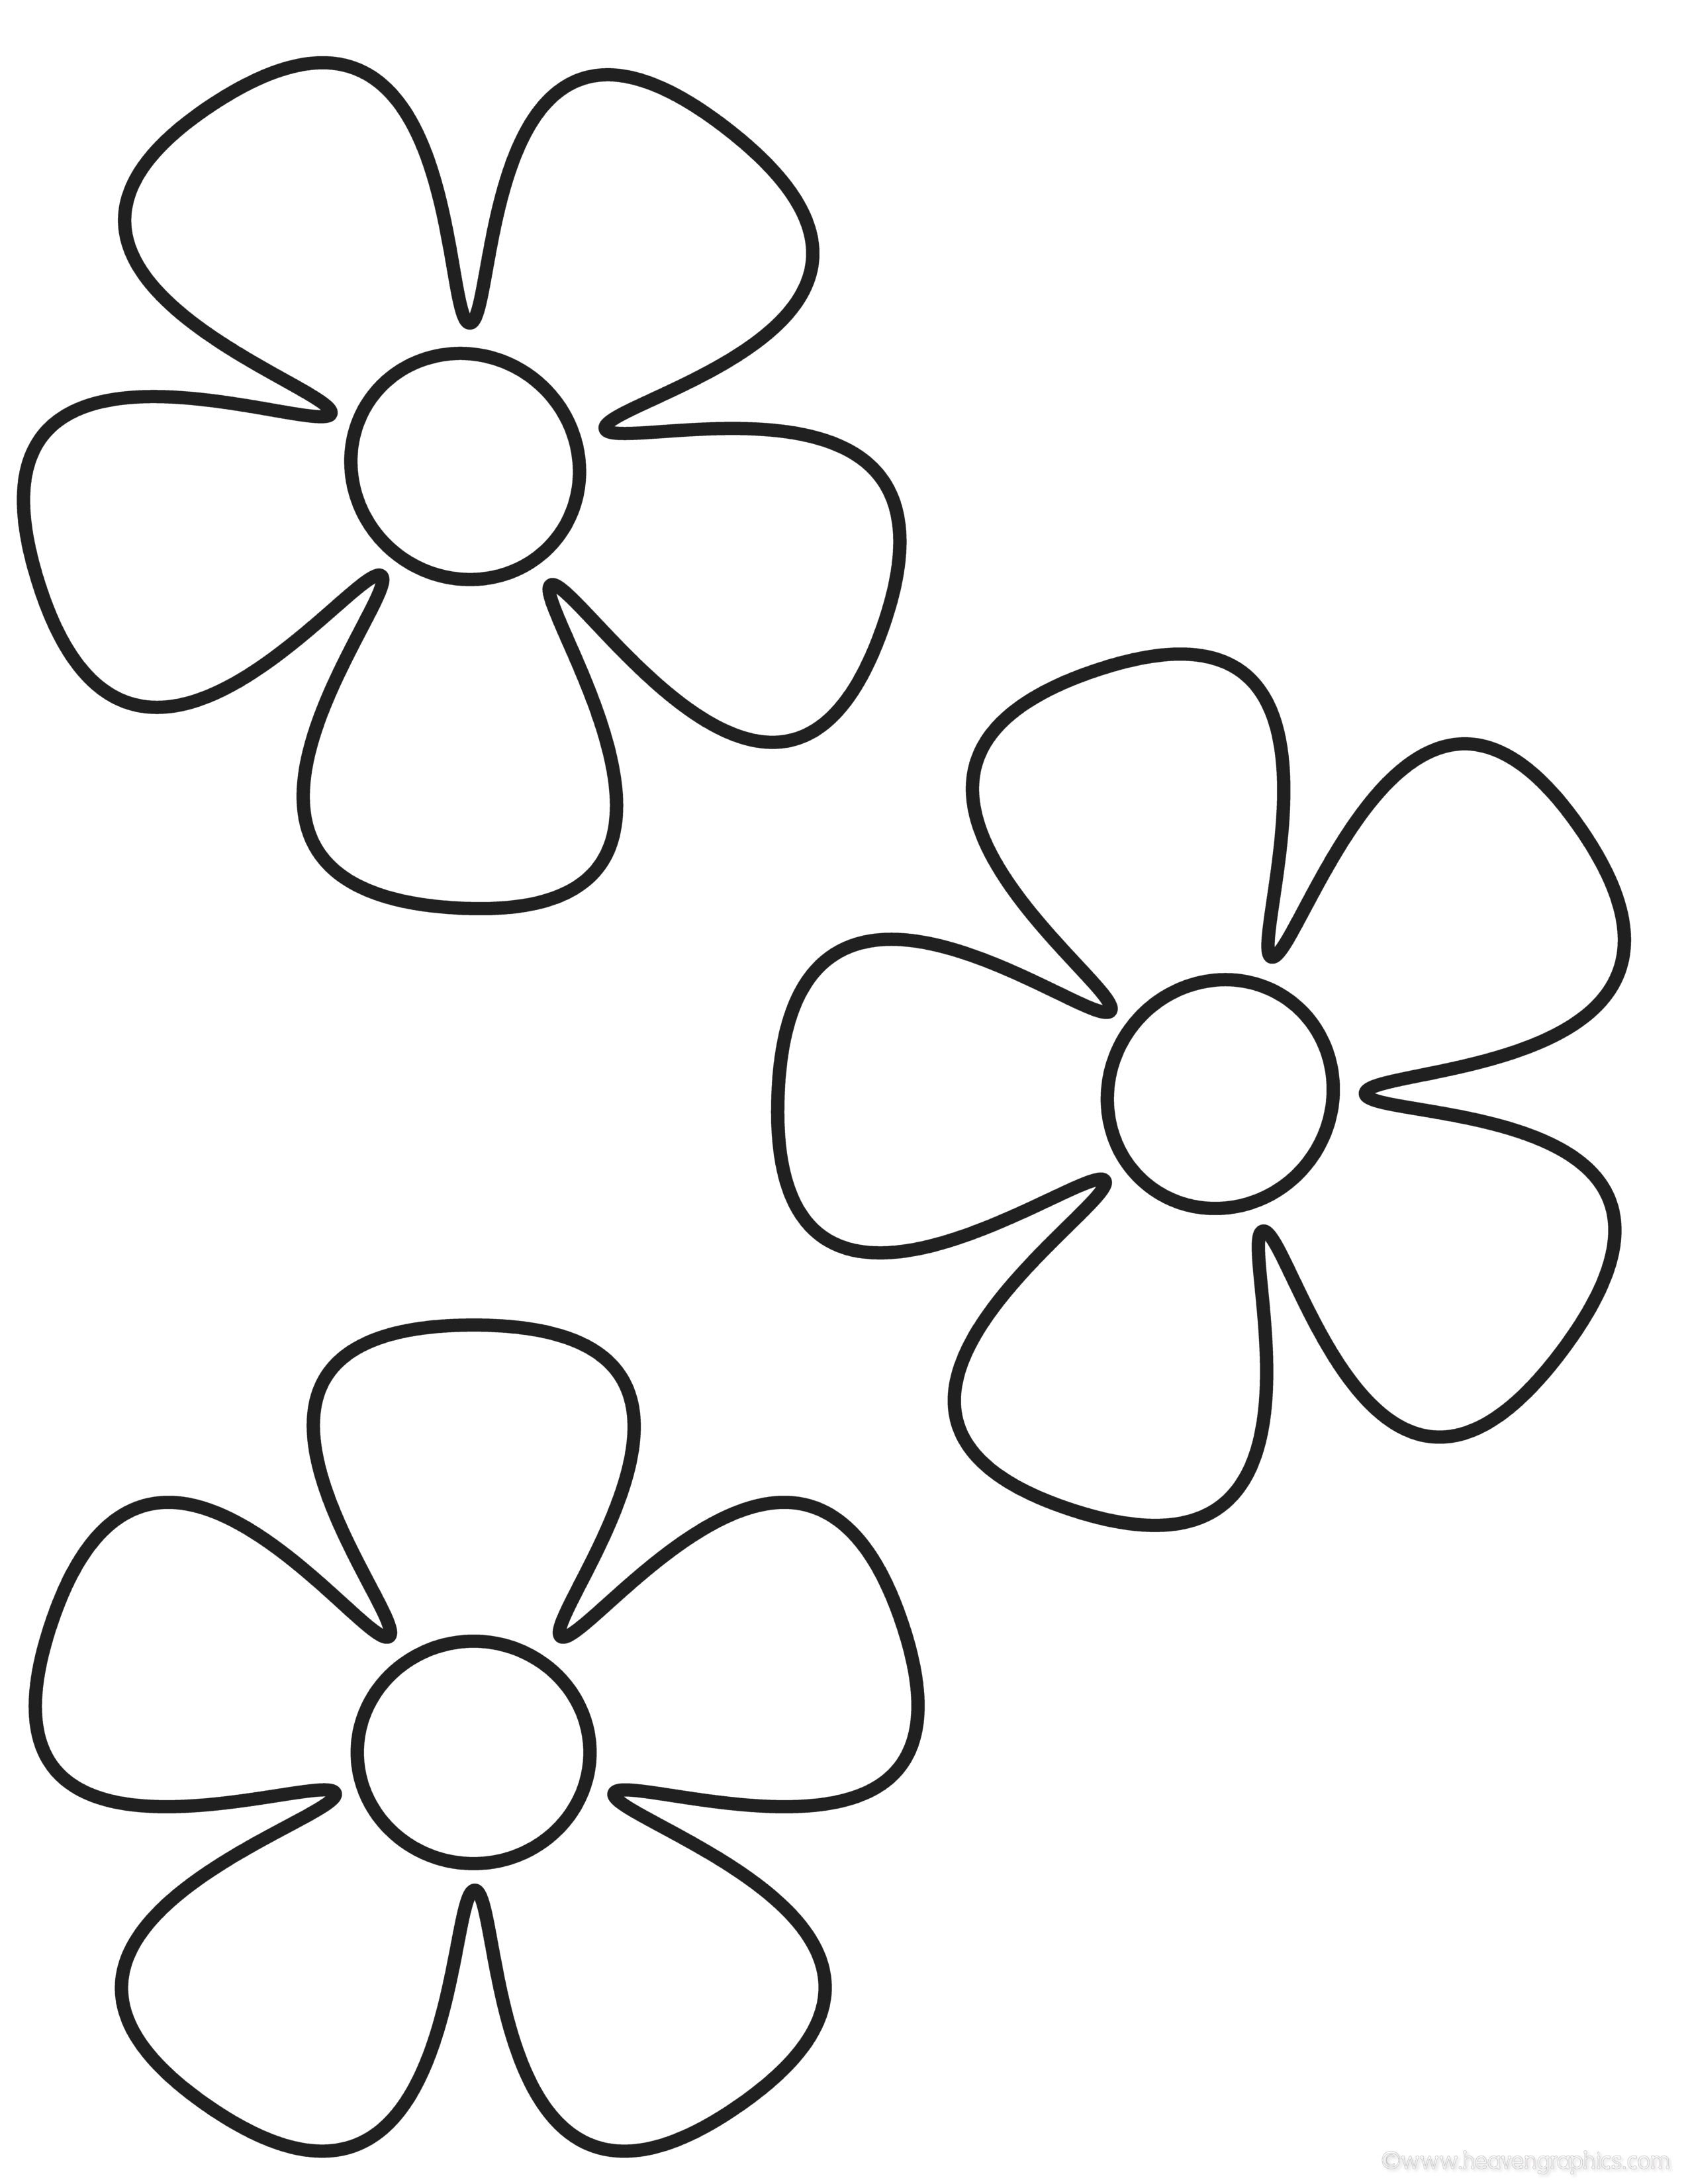 Simple Flower Coloring Page - Coloring Pages for Kids and for Adults